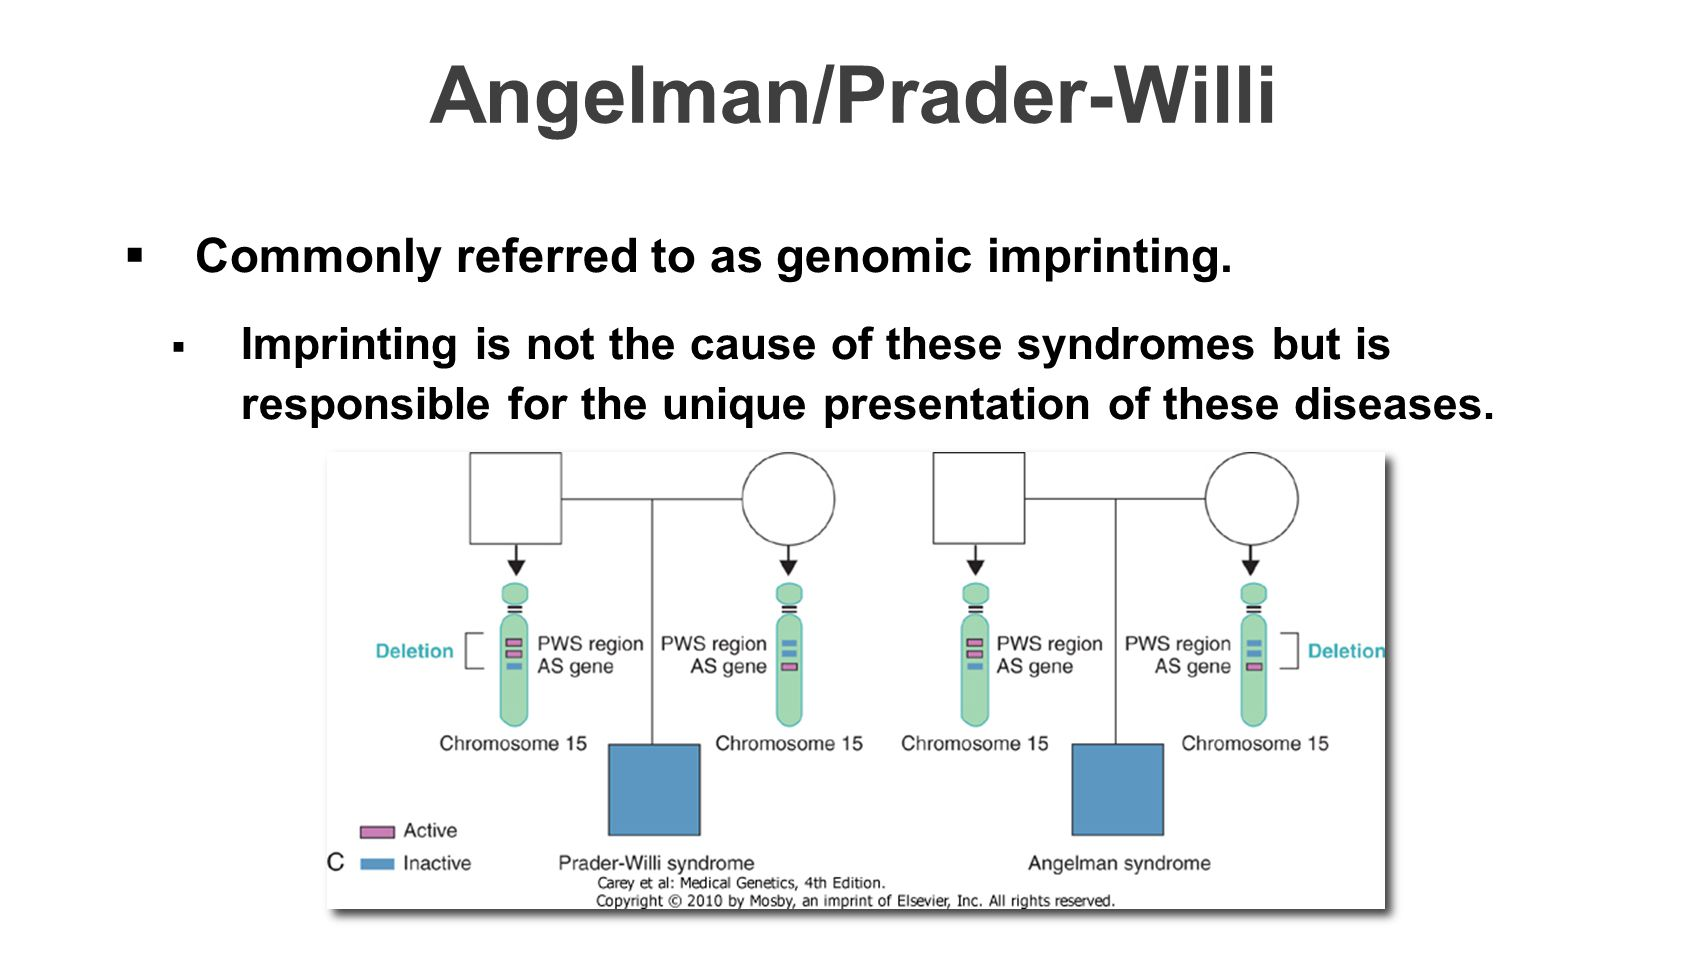 Angelman/Prader-Willi  Commonly referred to as genomic imprinting.  Imprinting is not the cause of these syndromes but is responsible for the unique